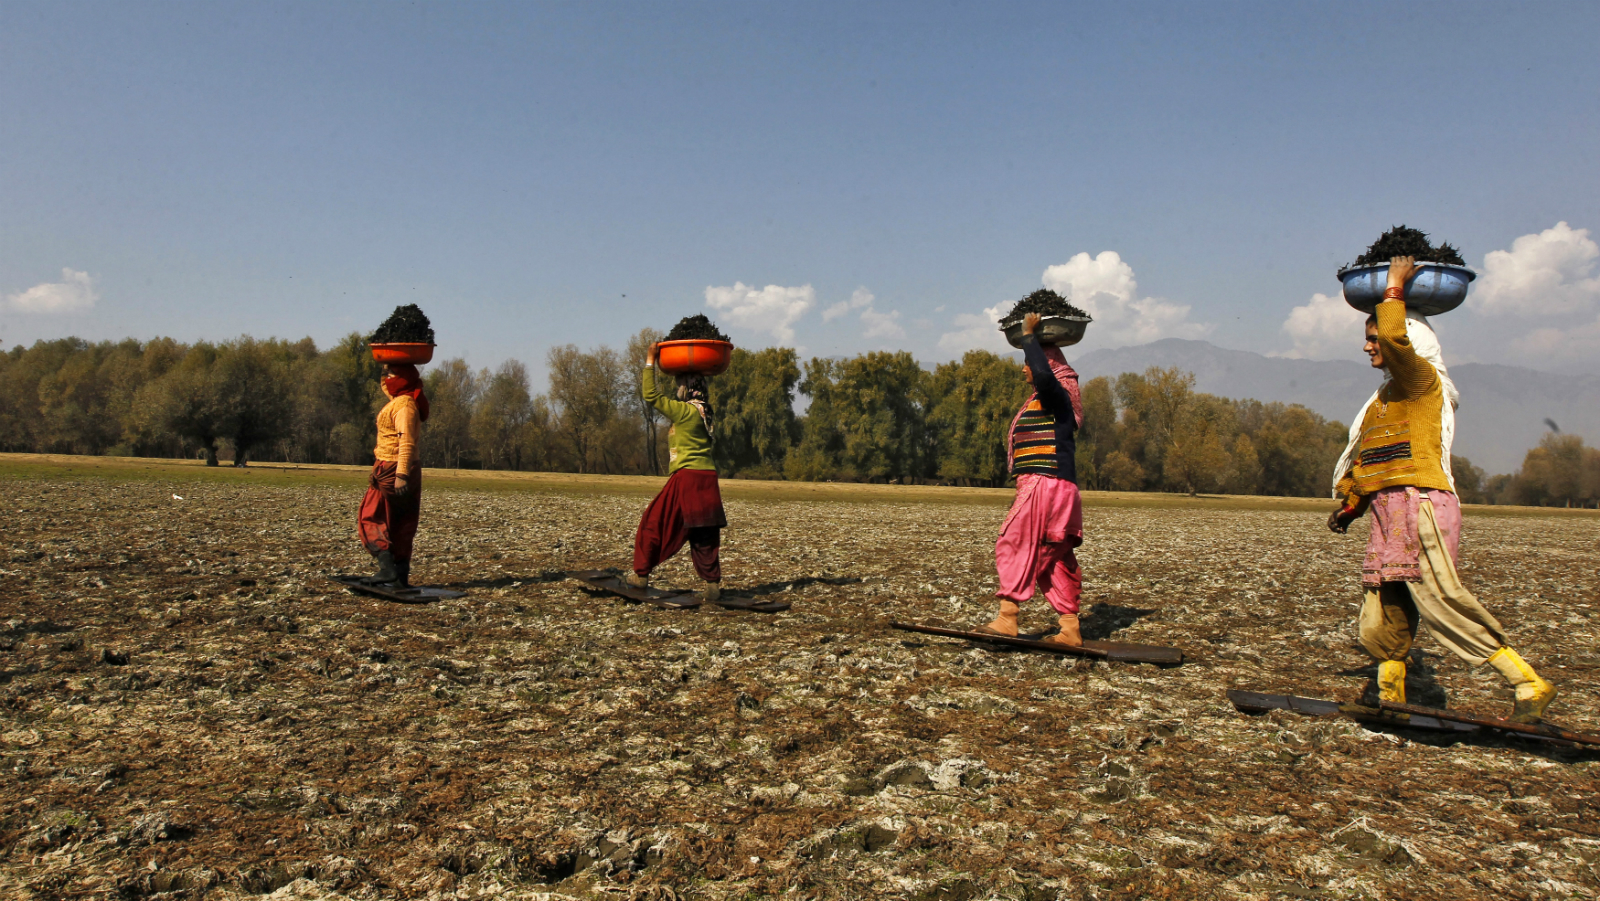 """Kashmiri village women carry baskets filled with water chestnuts after collecting them from the waters of Wular Lake as they walk over the marshy land while wearing wooden boards on foot at Bandipora, about 65 km (40 miles) north of Srinagar, November 5, 2012. Water chestnuts are locally known as """"Singada"""" and are eaten raw, boiled or are grounded into flour after they are dried. Picture taken November 5, 2012."""